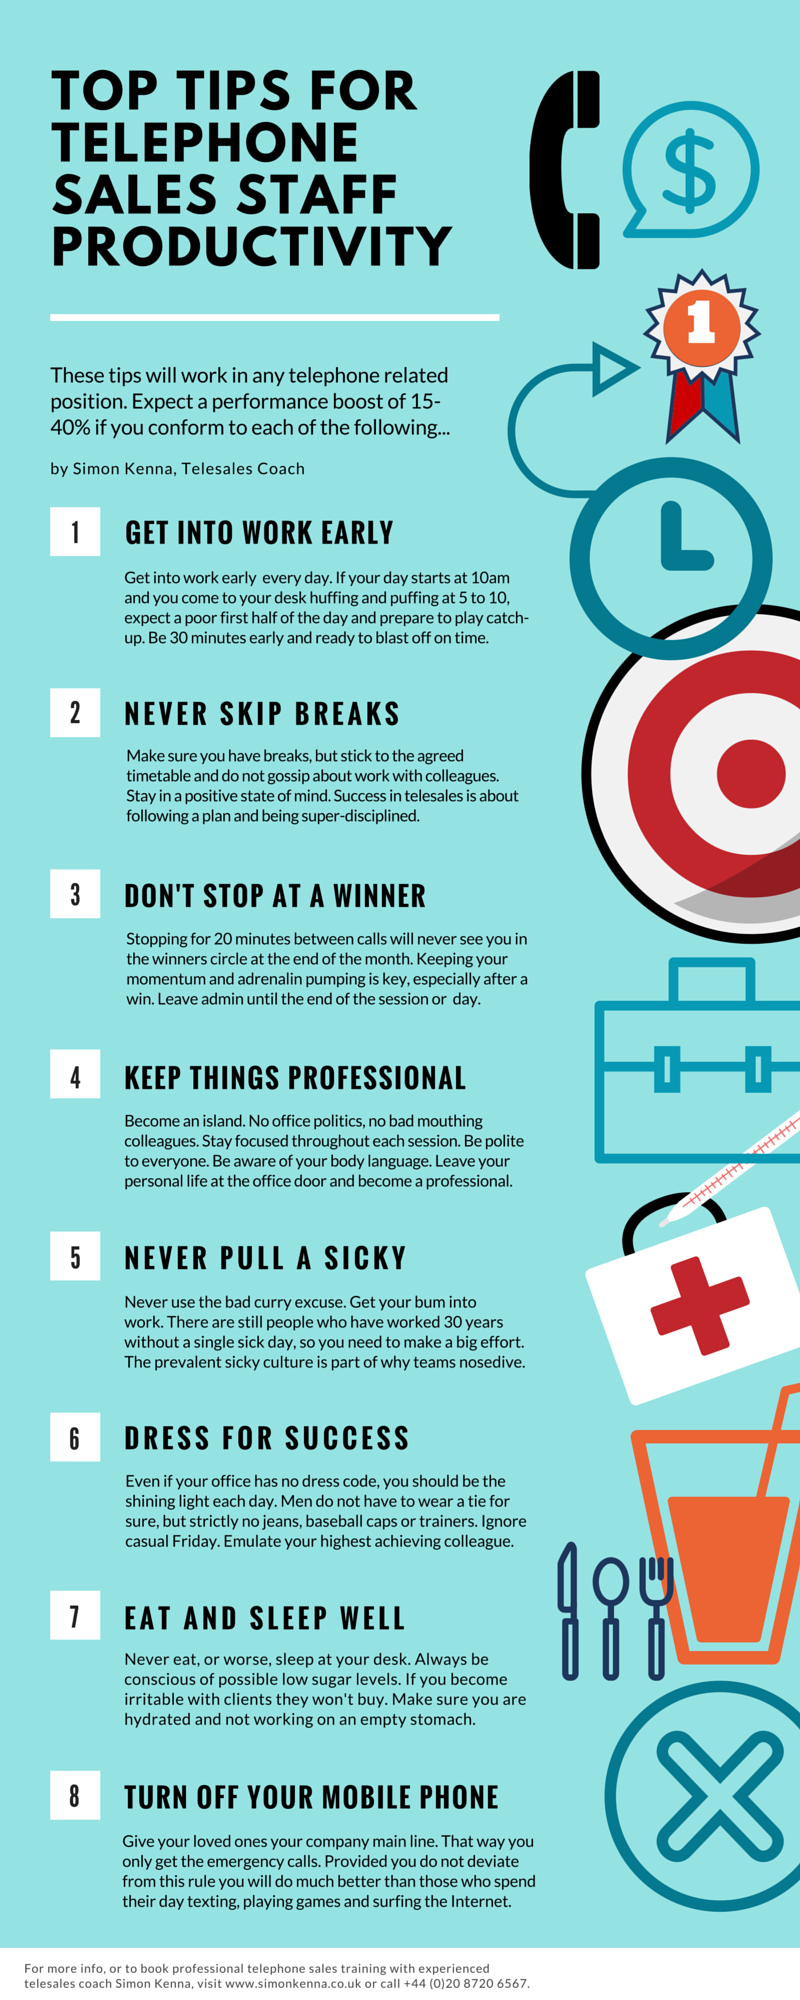 pin by boultmillerse on top tips for telephone sales staff